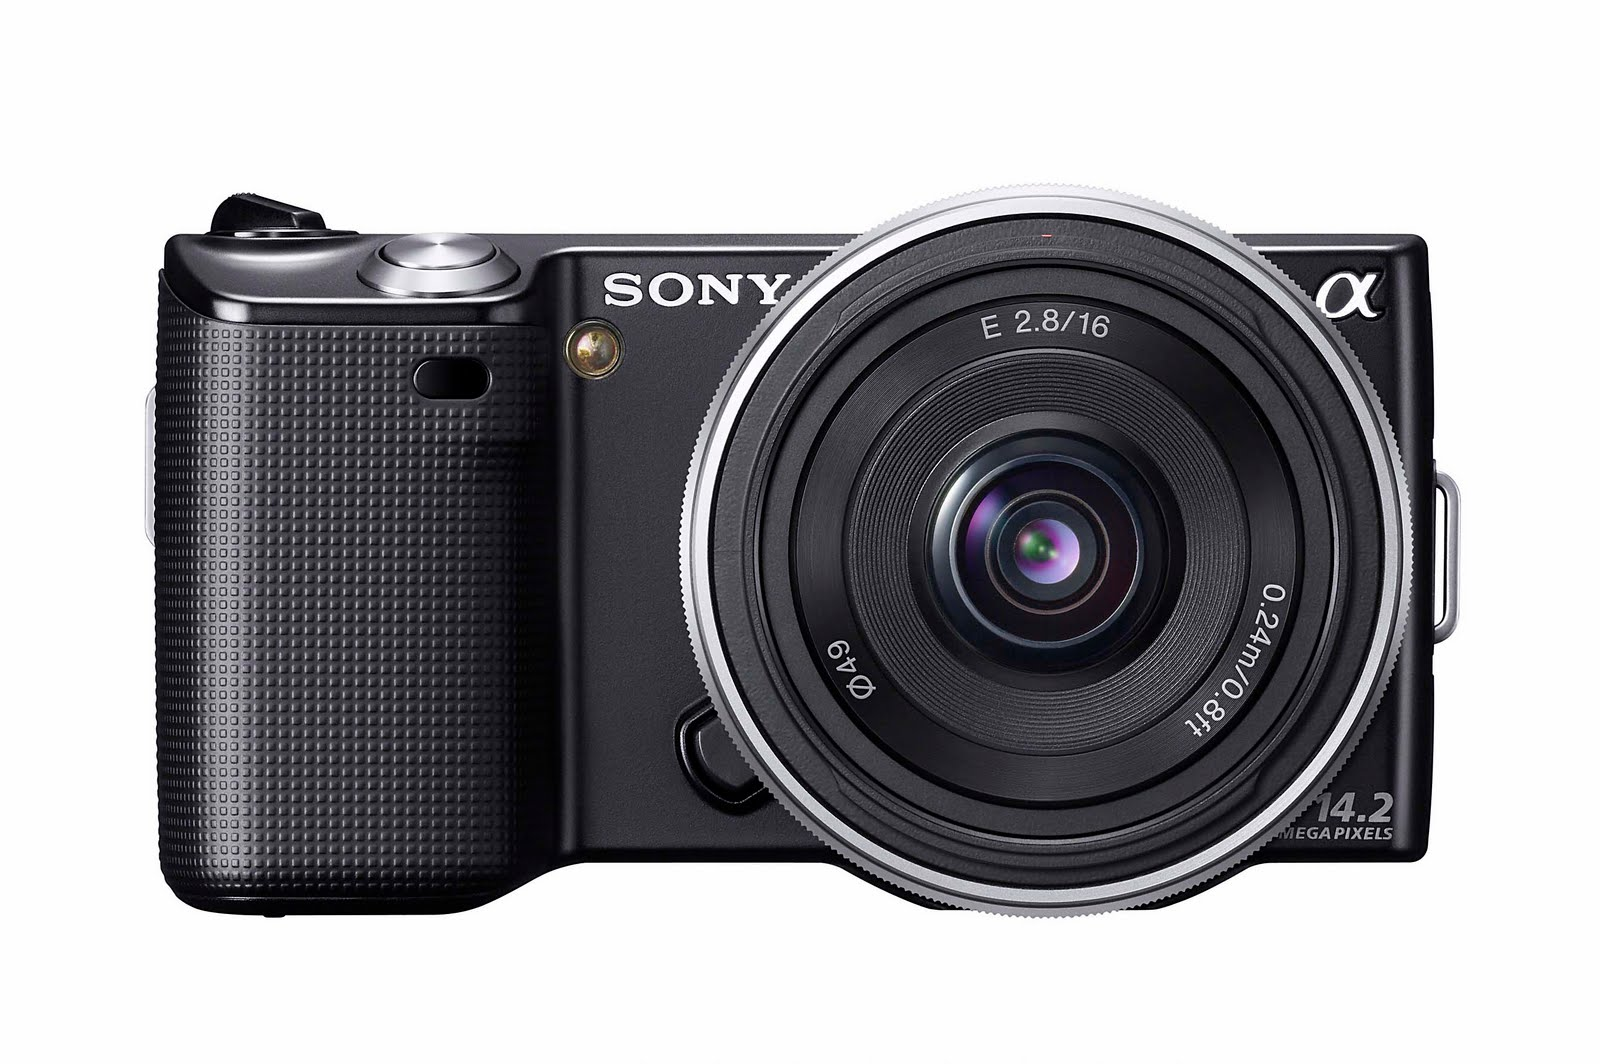 Sony NEX-5 with 16mm f/2.8 (24mm - equiv). Sony announced the rumoured NEX-5